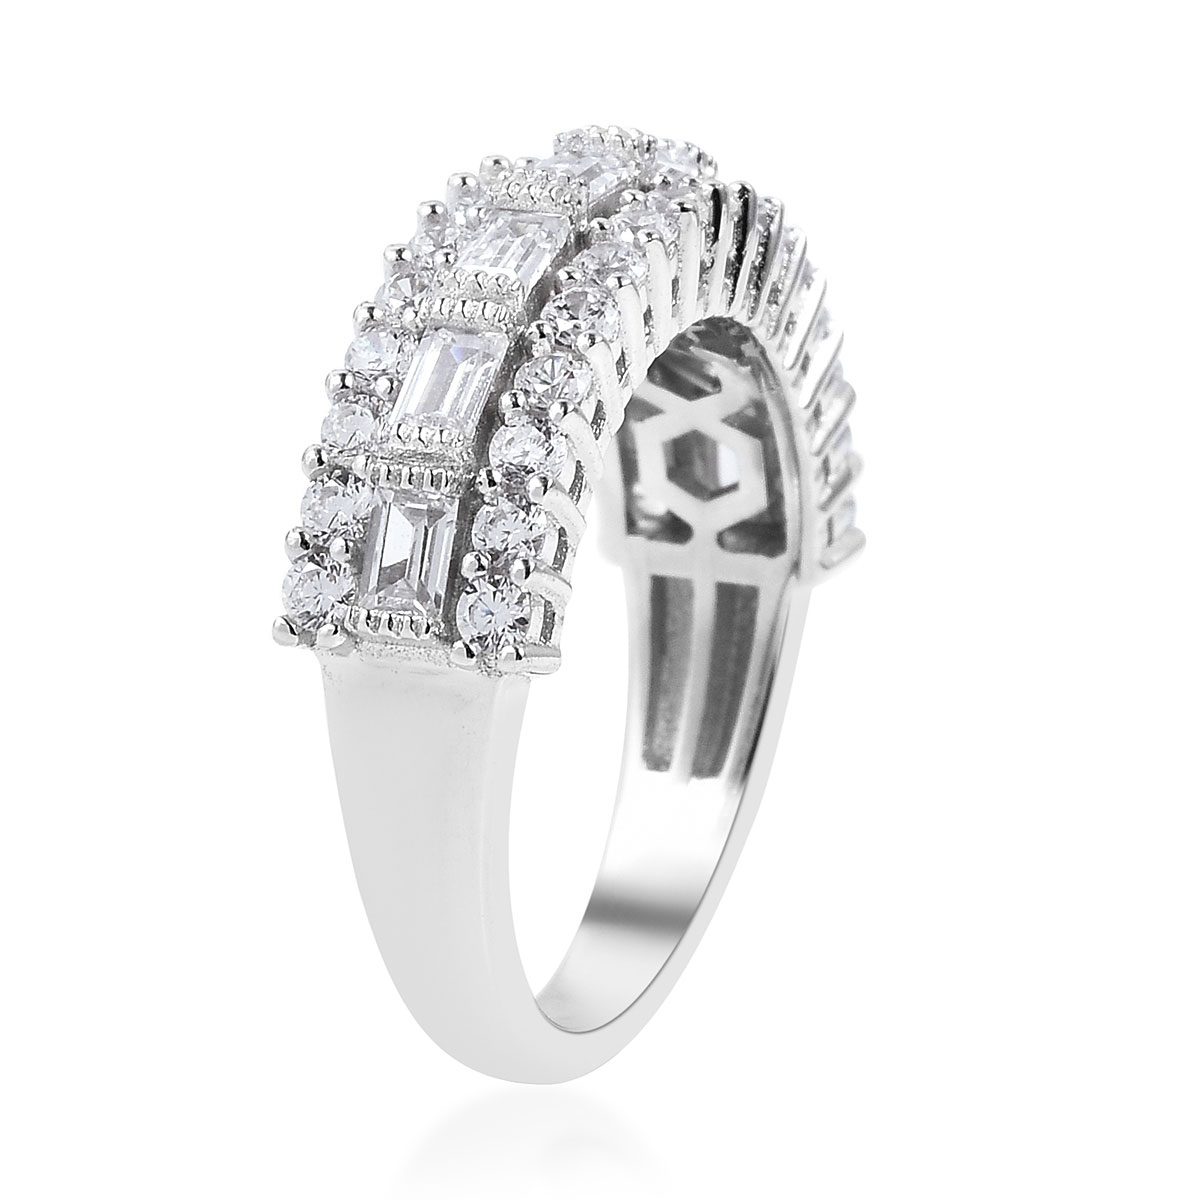 LUSTRO STELLA CZ Ring in Sterling Silver (Size 11.0) 2.48 ctw